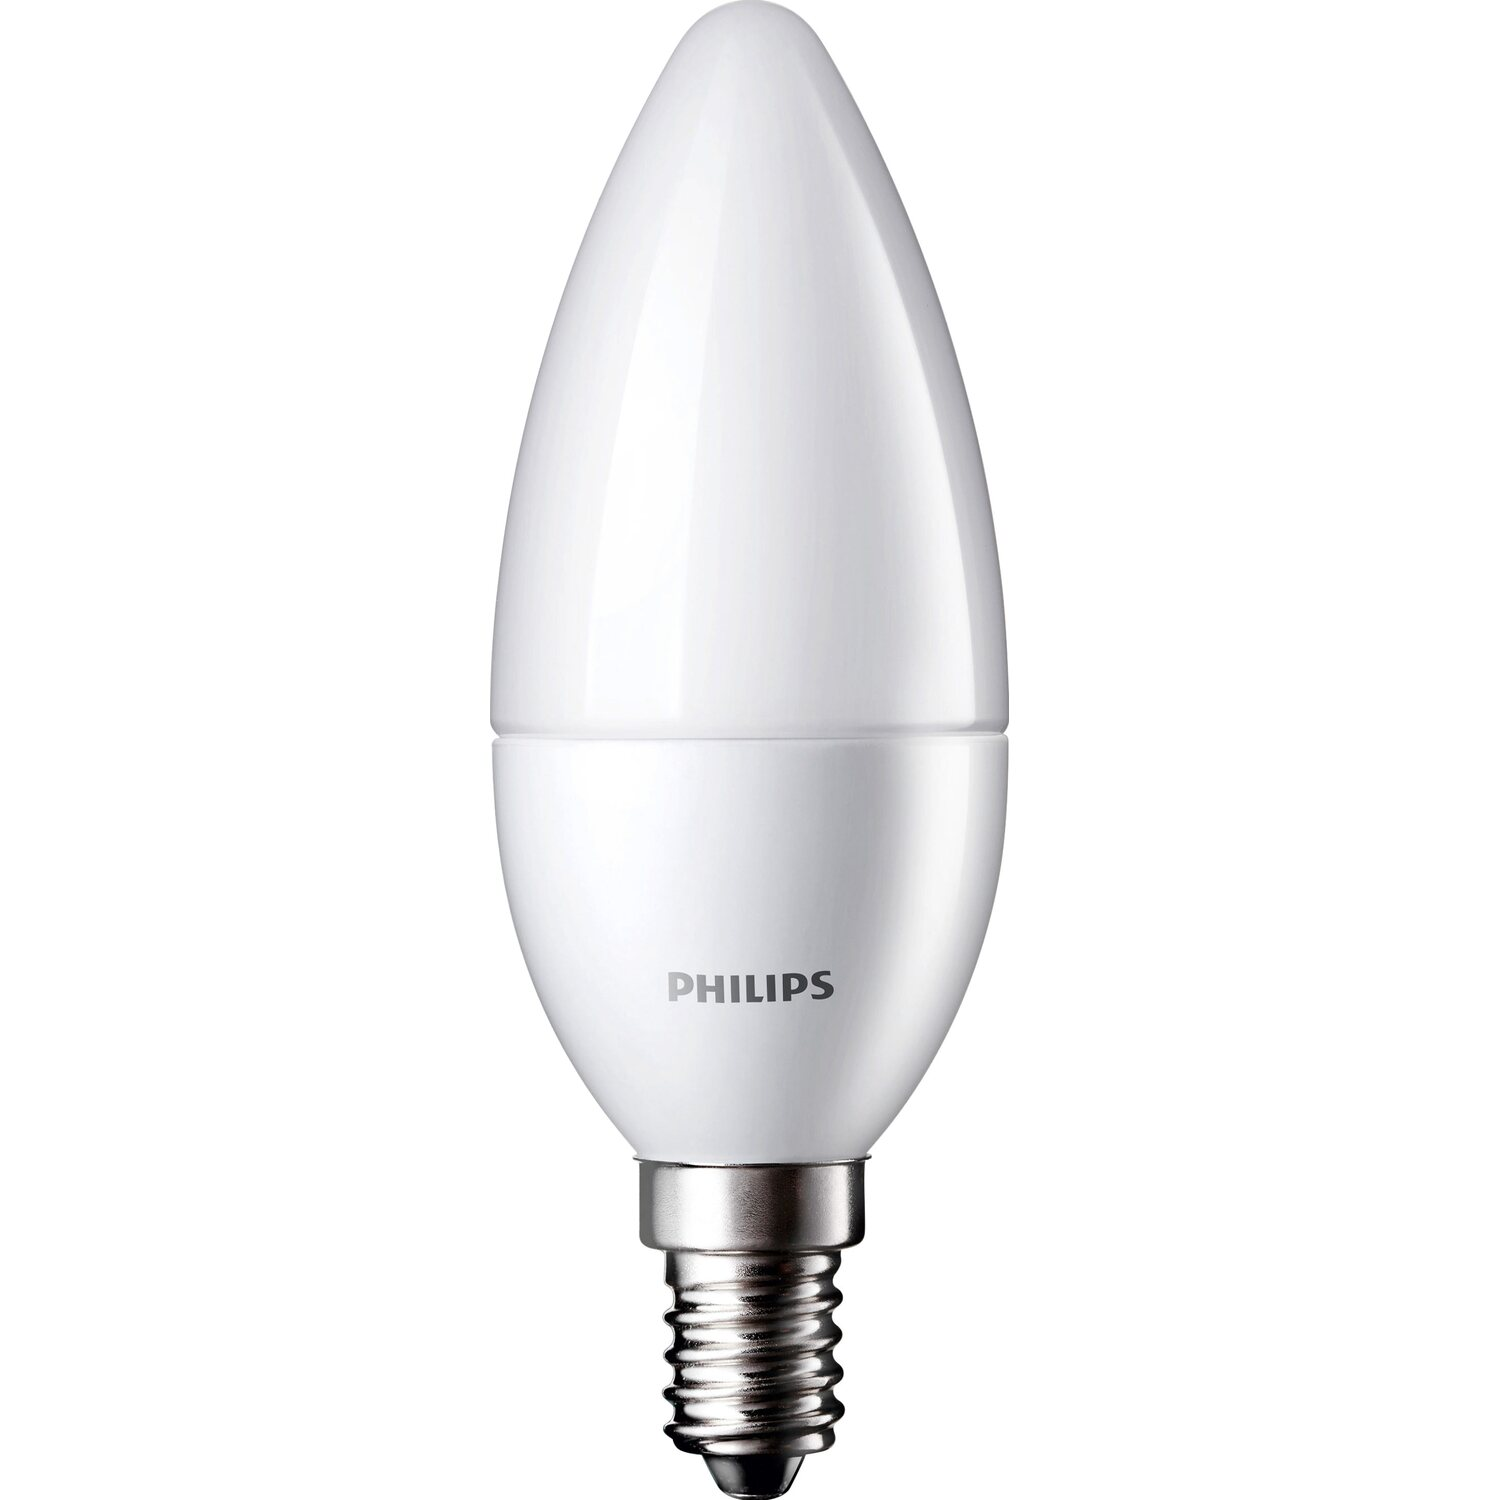 Philips LED-Lampe Kerzenform E14 / 5,5 W (470 lm) Warmweiß EEK: A+ ...